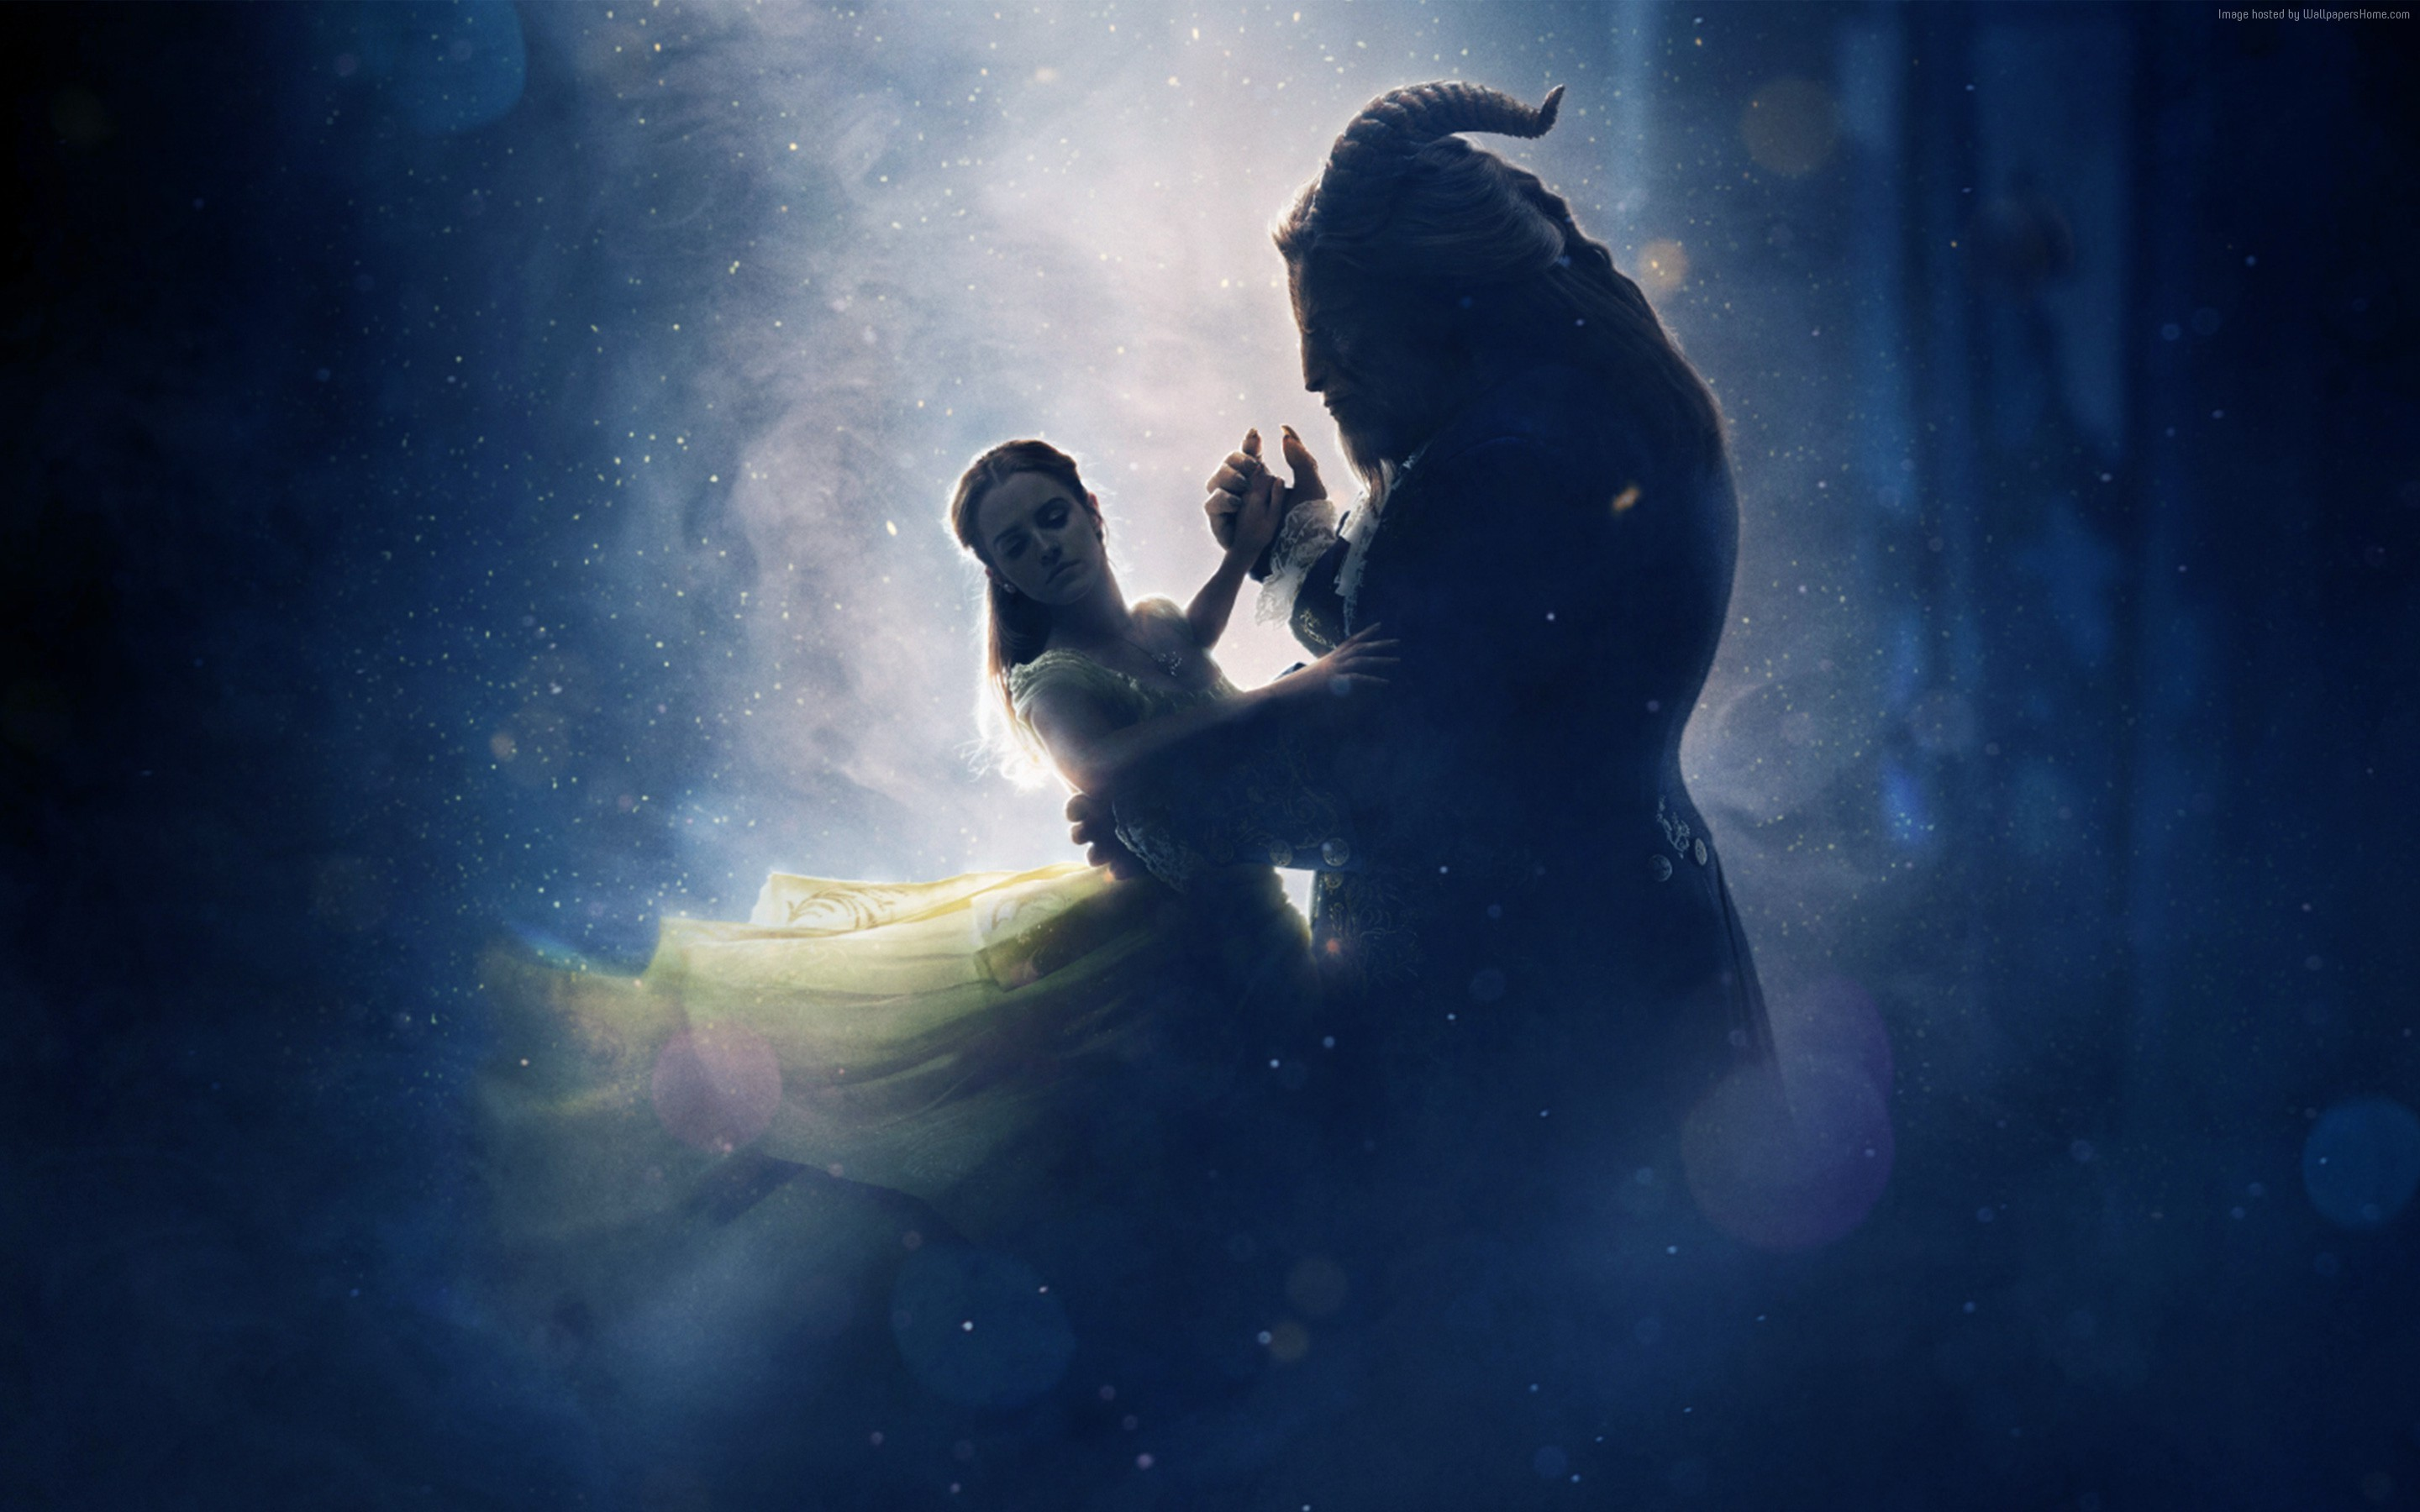 Beauty And The Beast Wallpapers 18 WallpapersExpert Journal 2880x1800